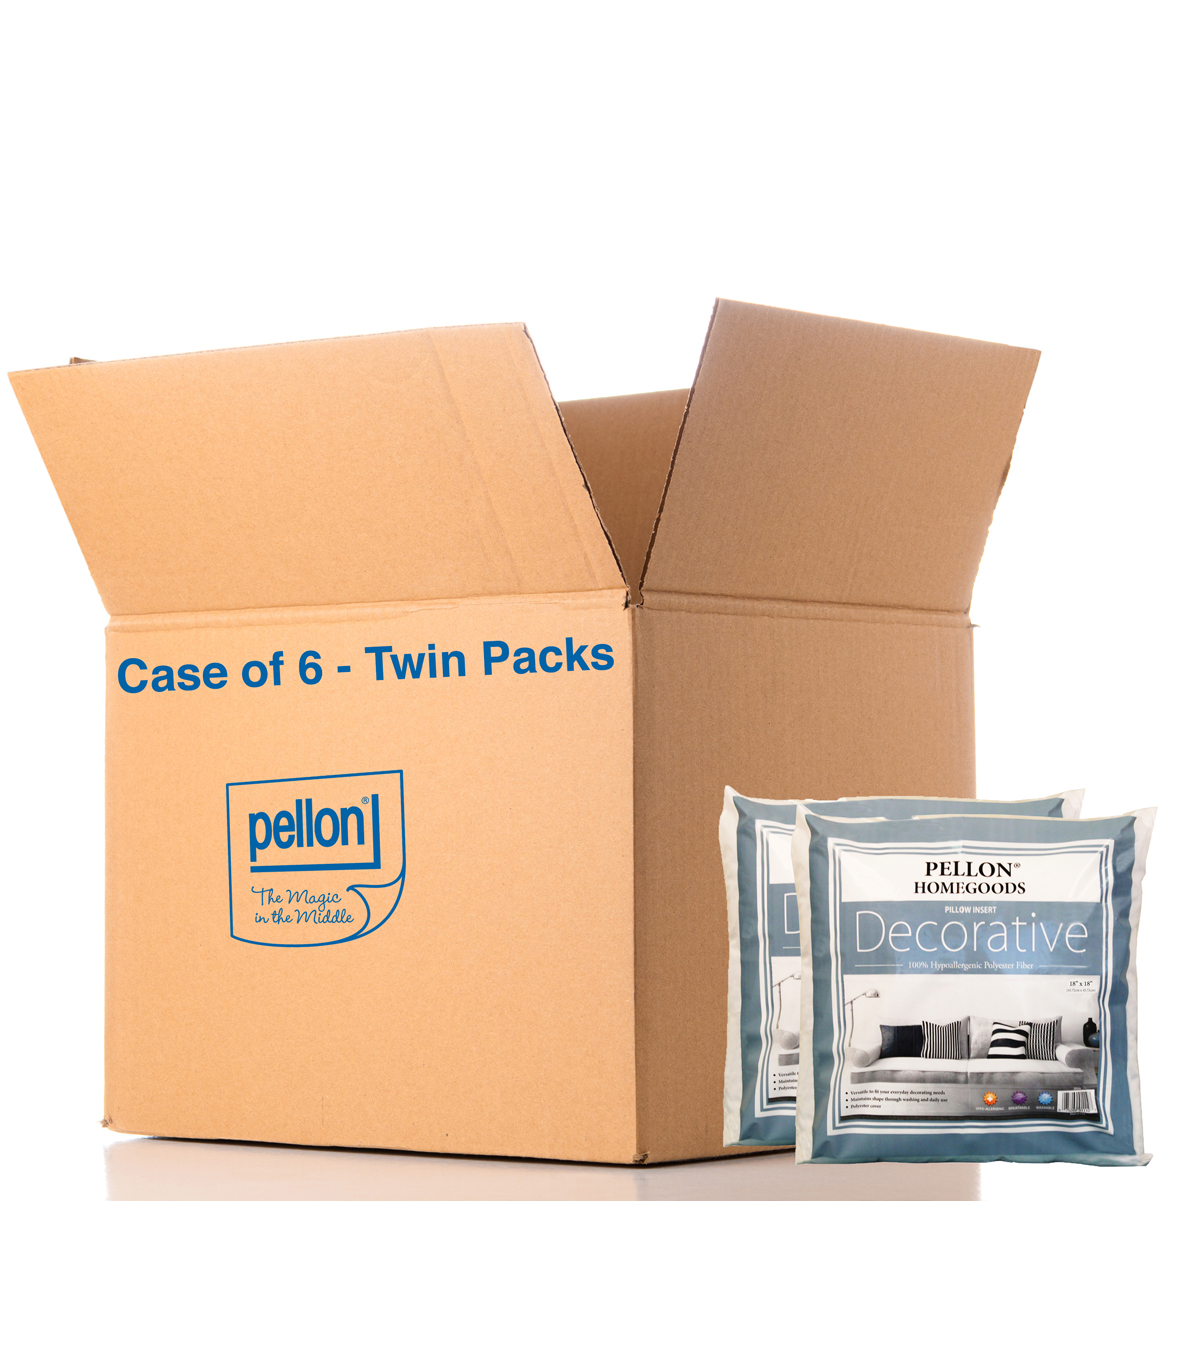 Decorative Twin Pack 18x18, 18x18 Twin Pack Case Of 6